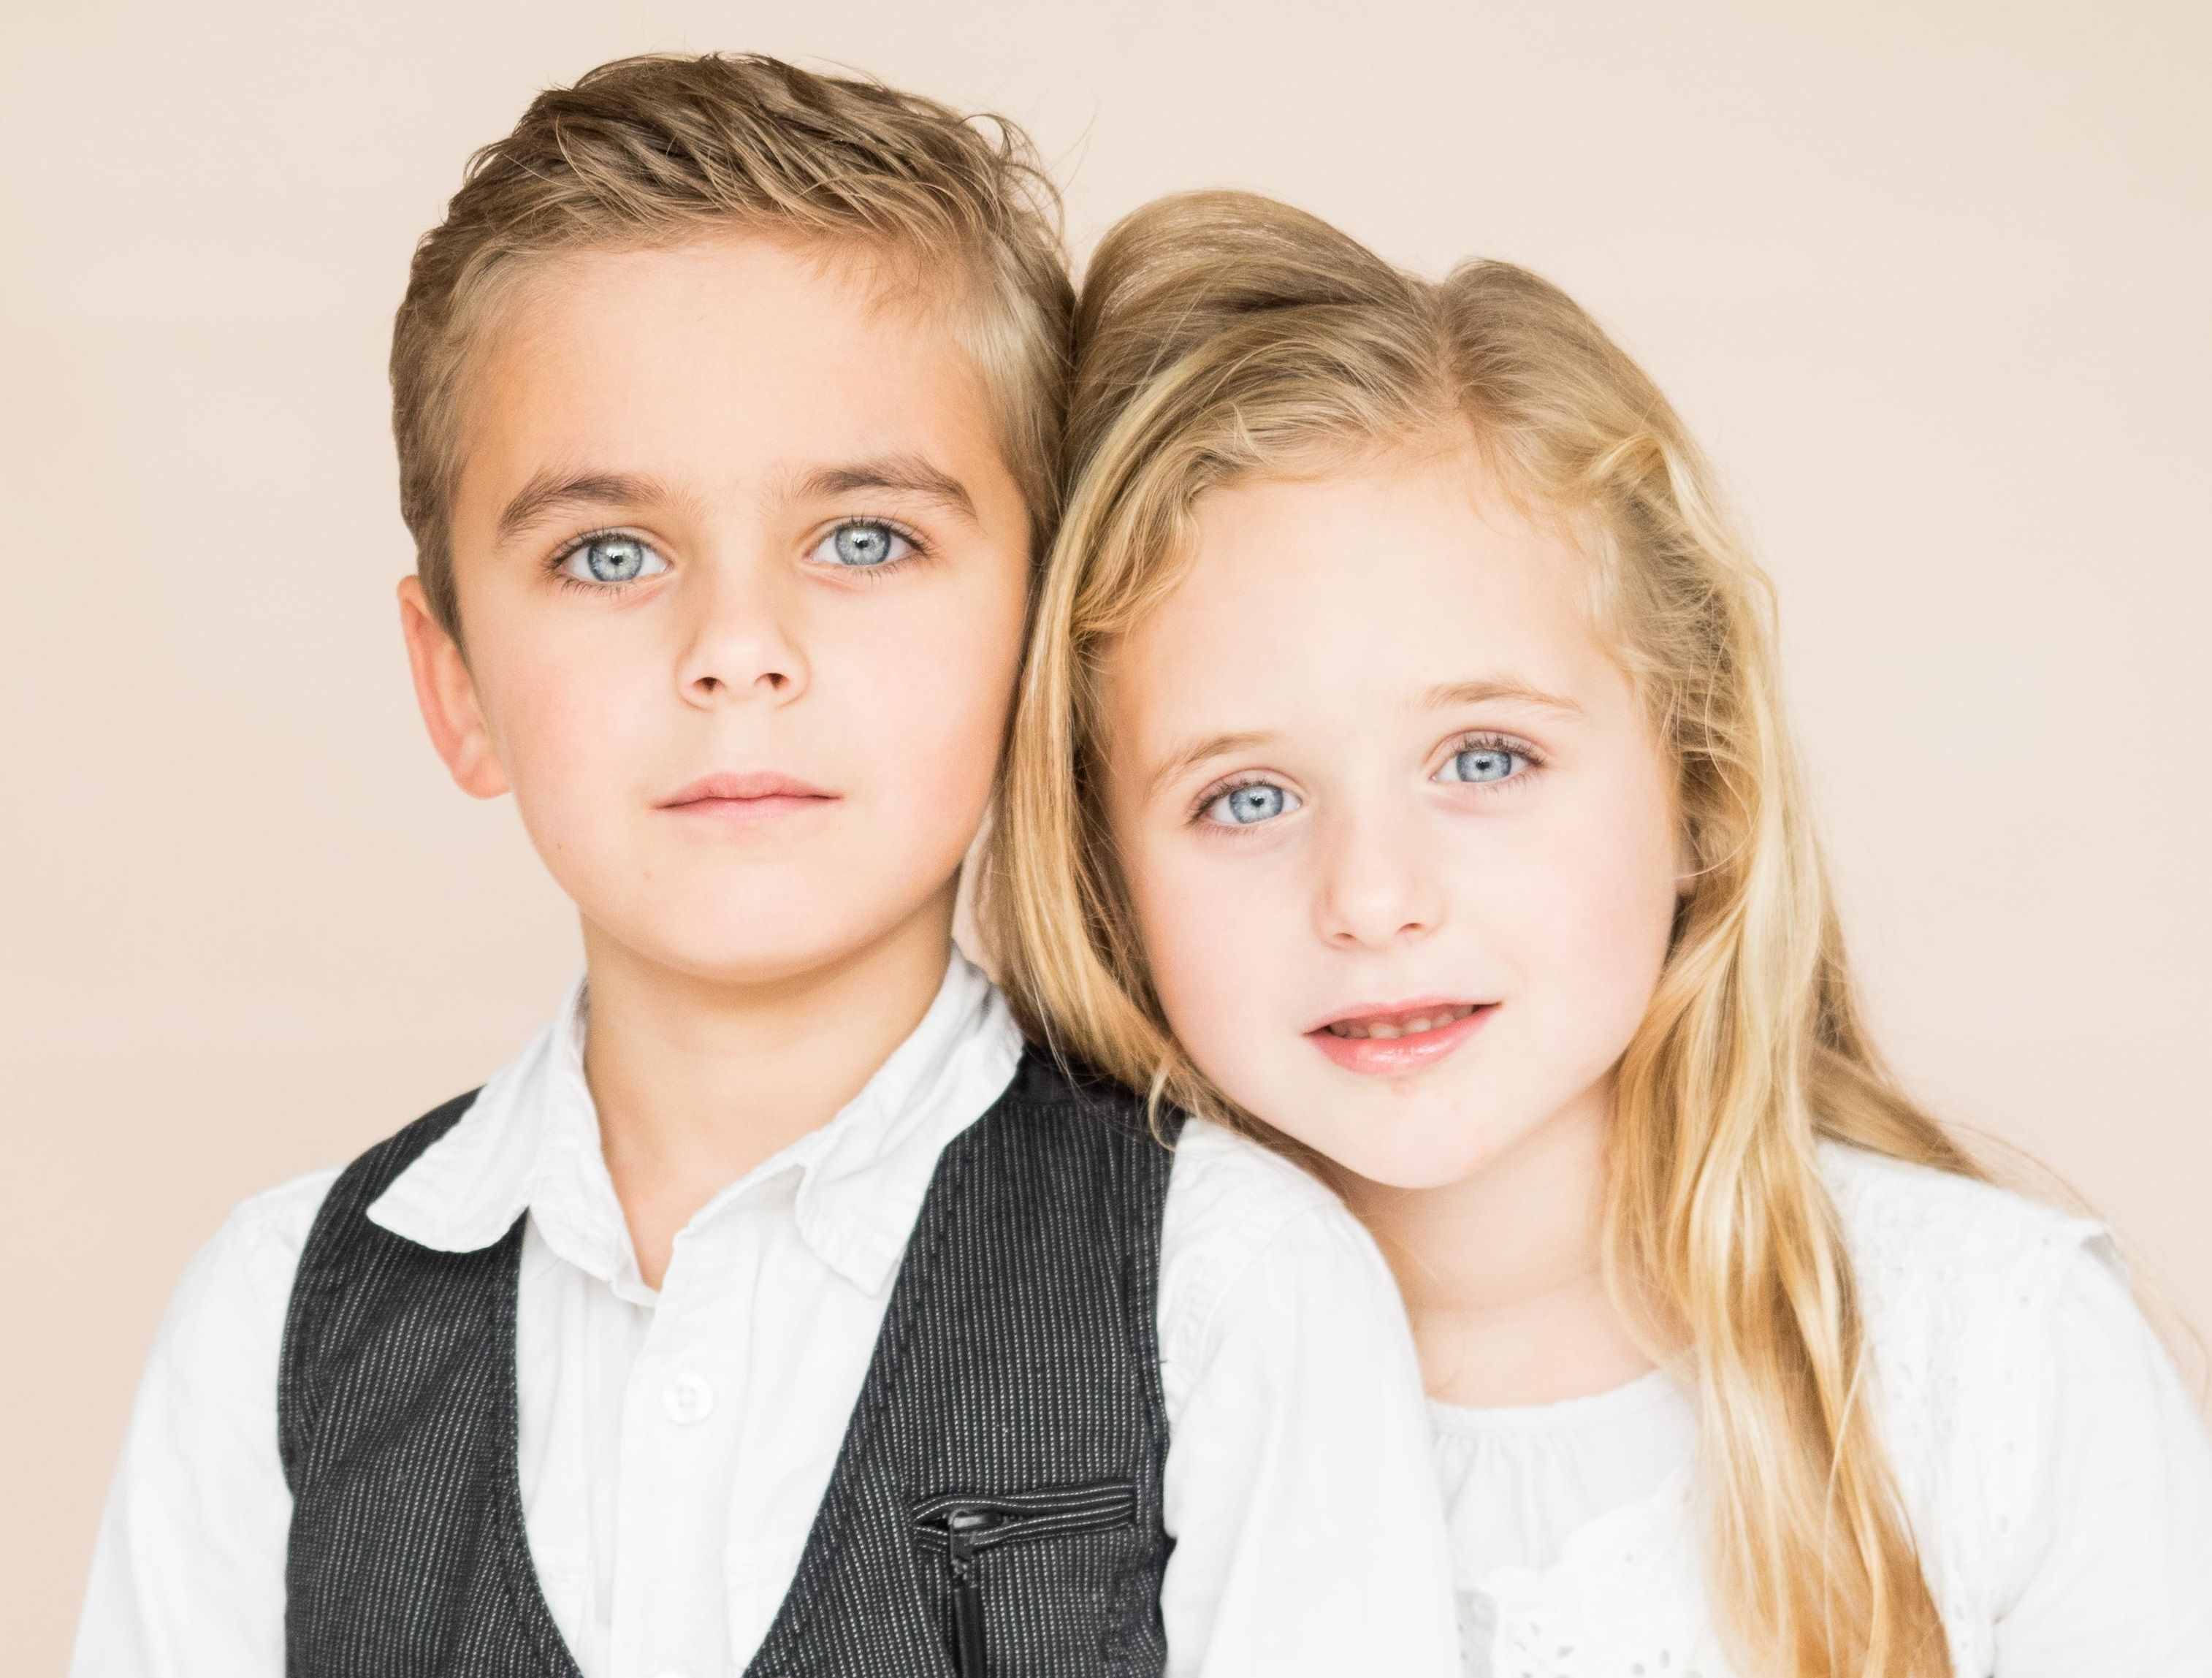 fraternal twins boy and girl character inspiration twins